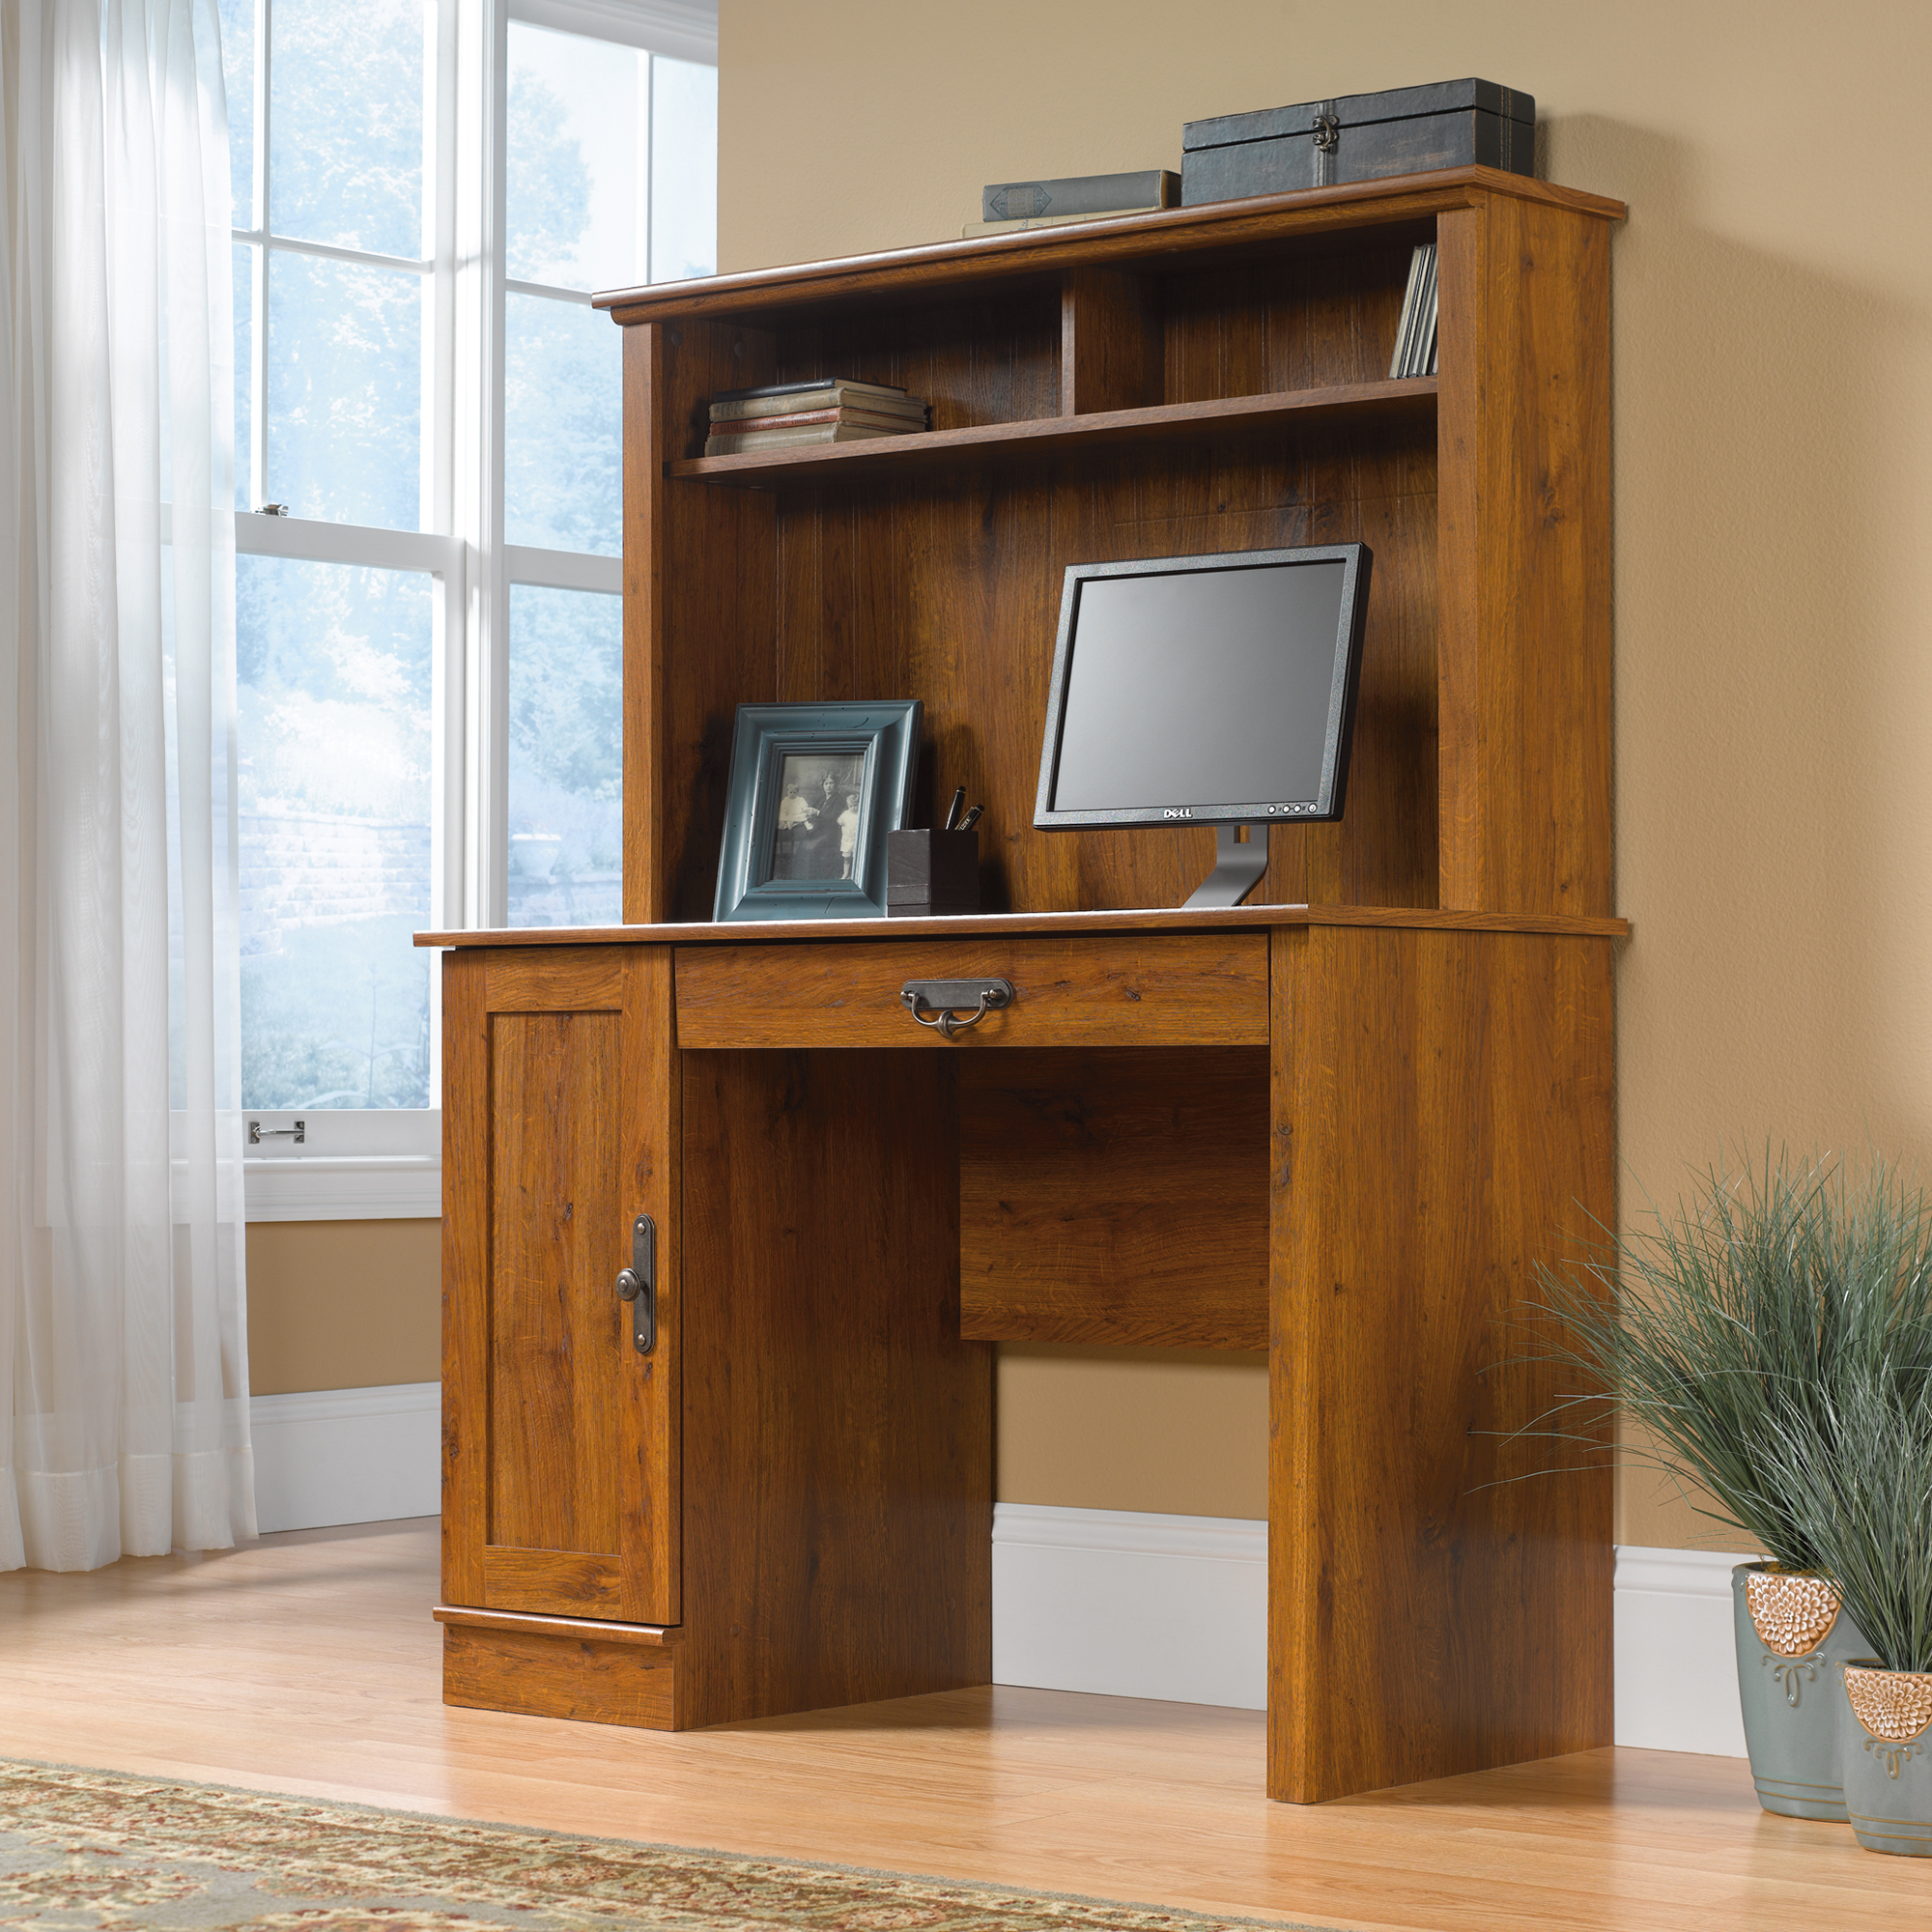 Sauder Computer Desks | Sauder Furniture Computer Desk | Sauder Furniture Sale